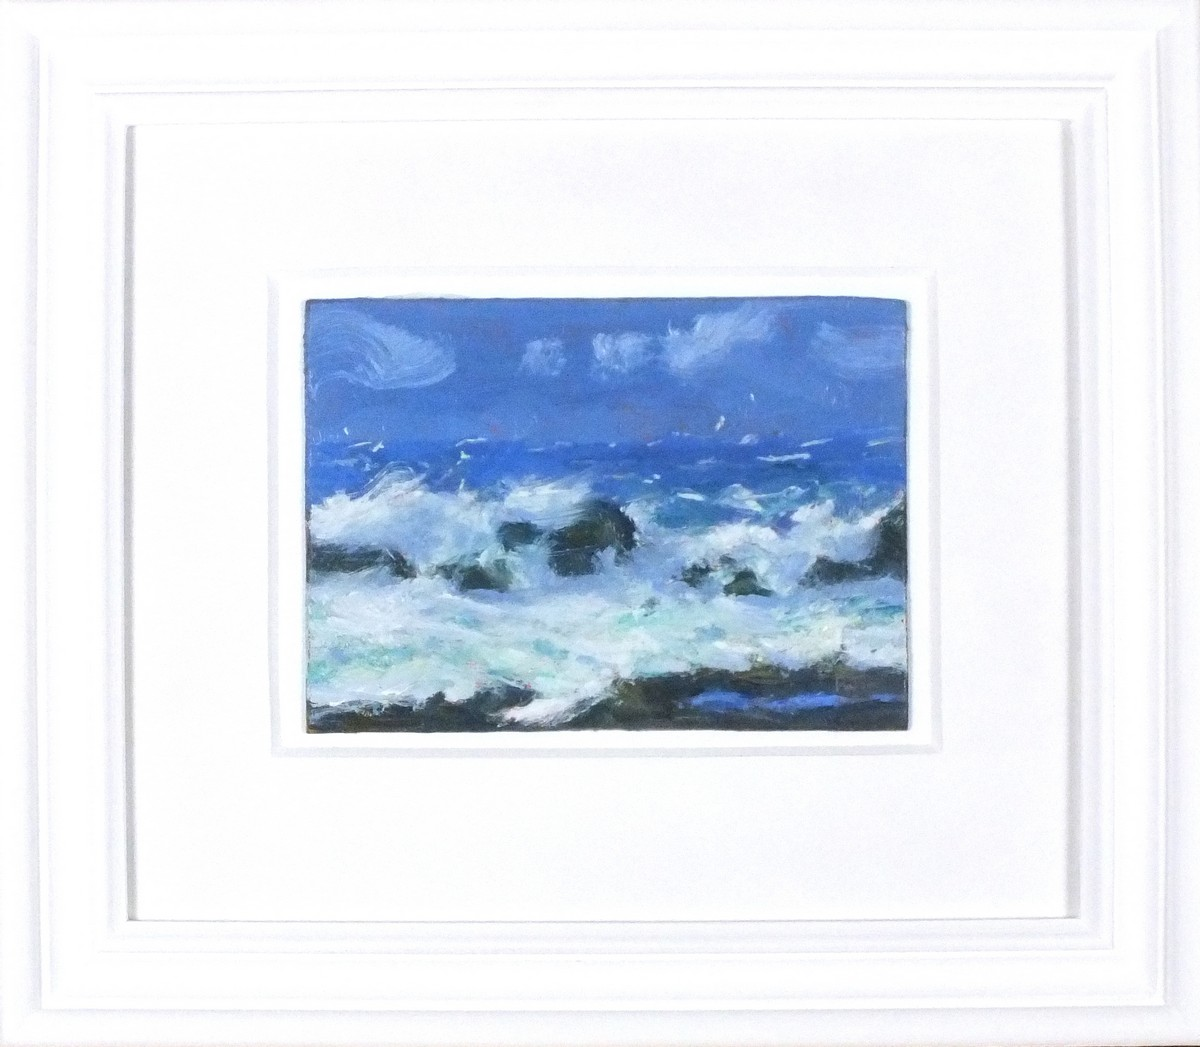 "Lot 51 - * Robert JONES (b.1943), Oil on board, 'Rocky Shore', Inscribed to verso, Signed with initials, 6"" x"